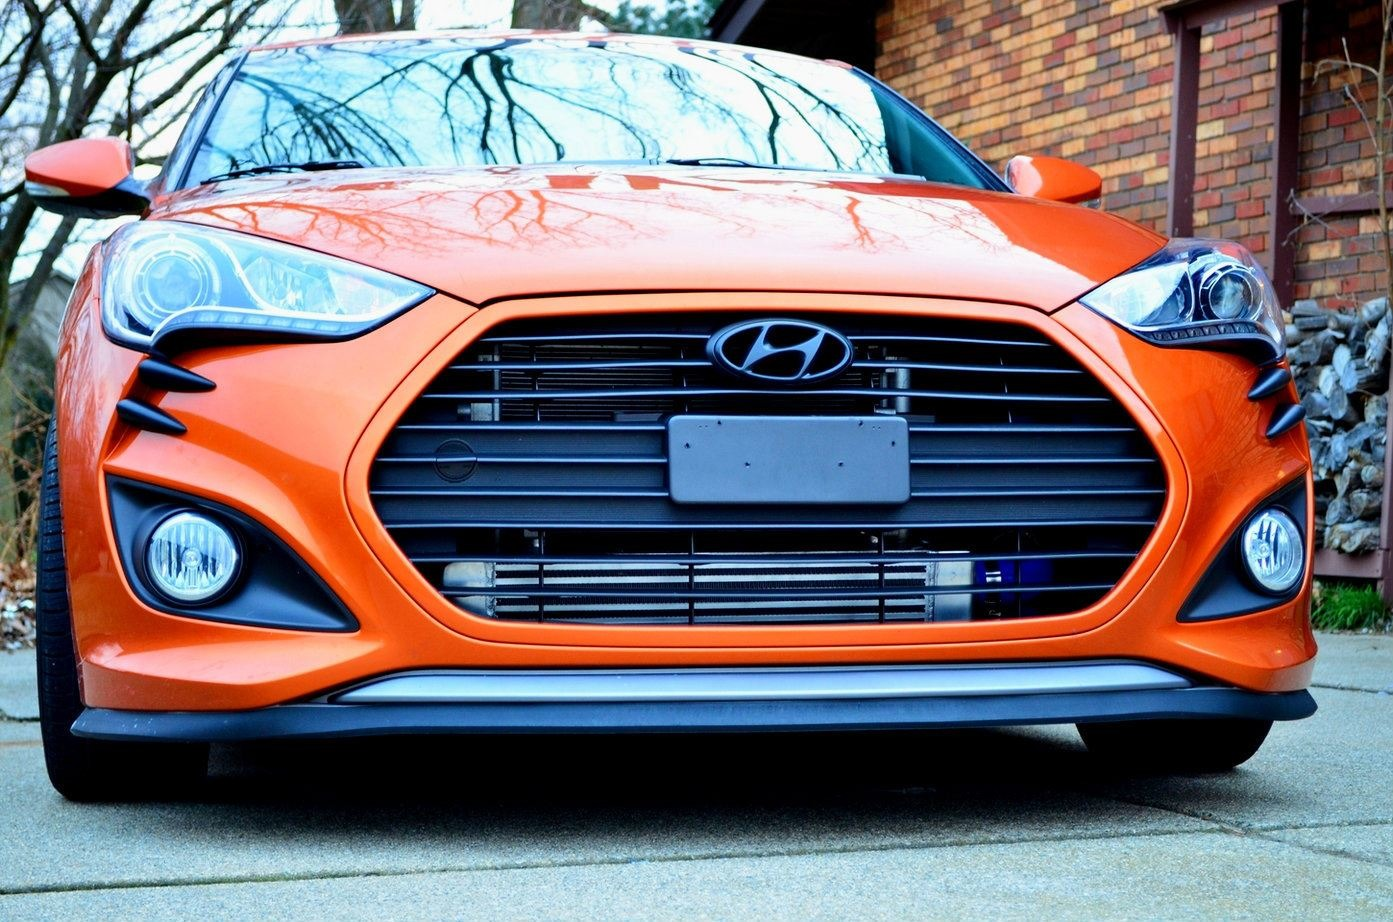 ts front mount intercooler kit for 2013 hyundai veloster turbo Custom Veloster Turbo add to my lists ts front mount intercooler kit for 2013 hyundai veloster turbo